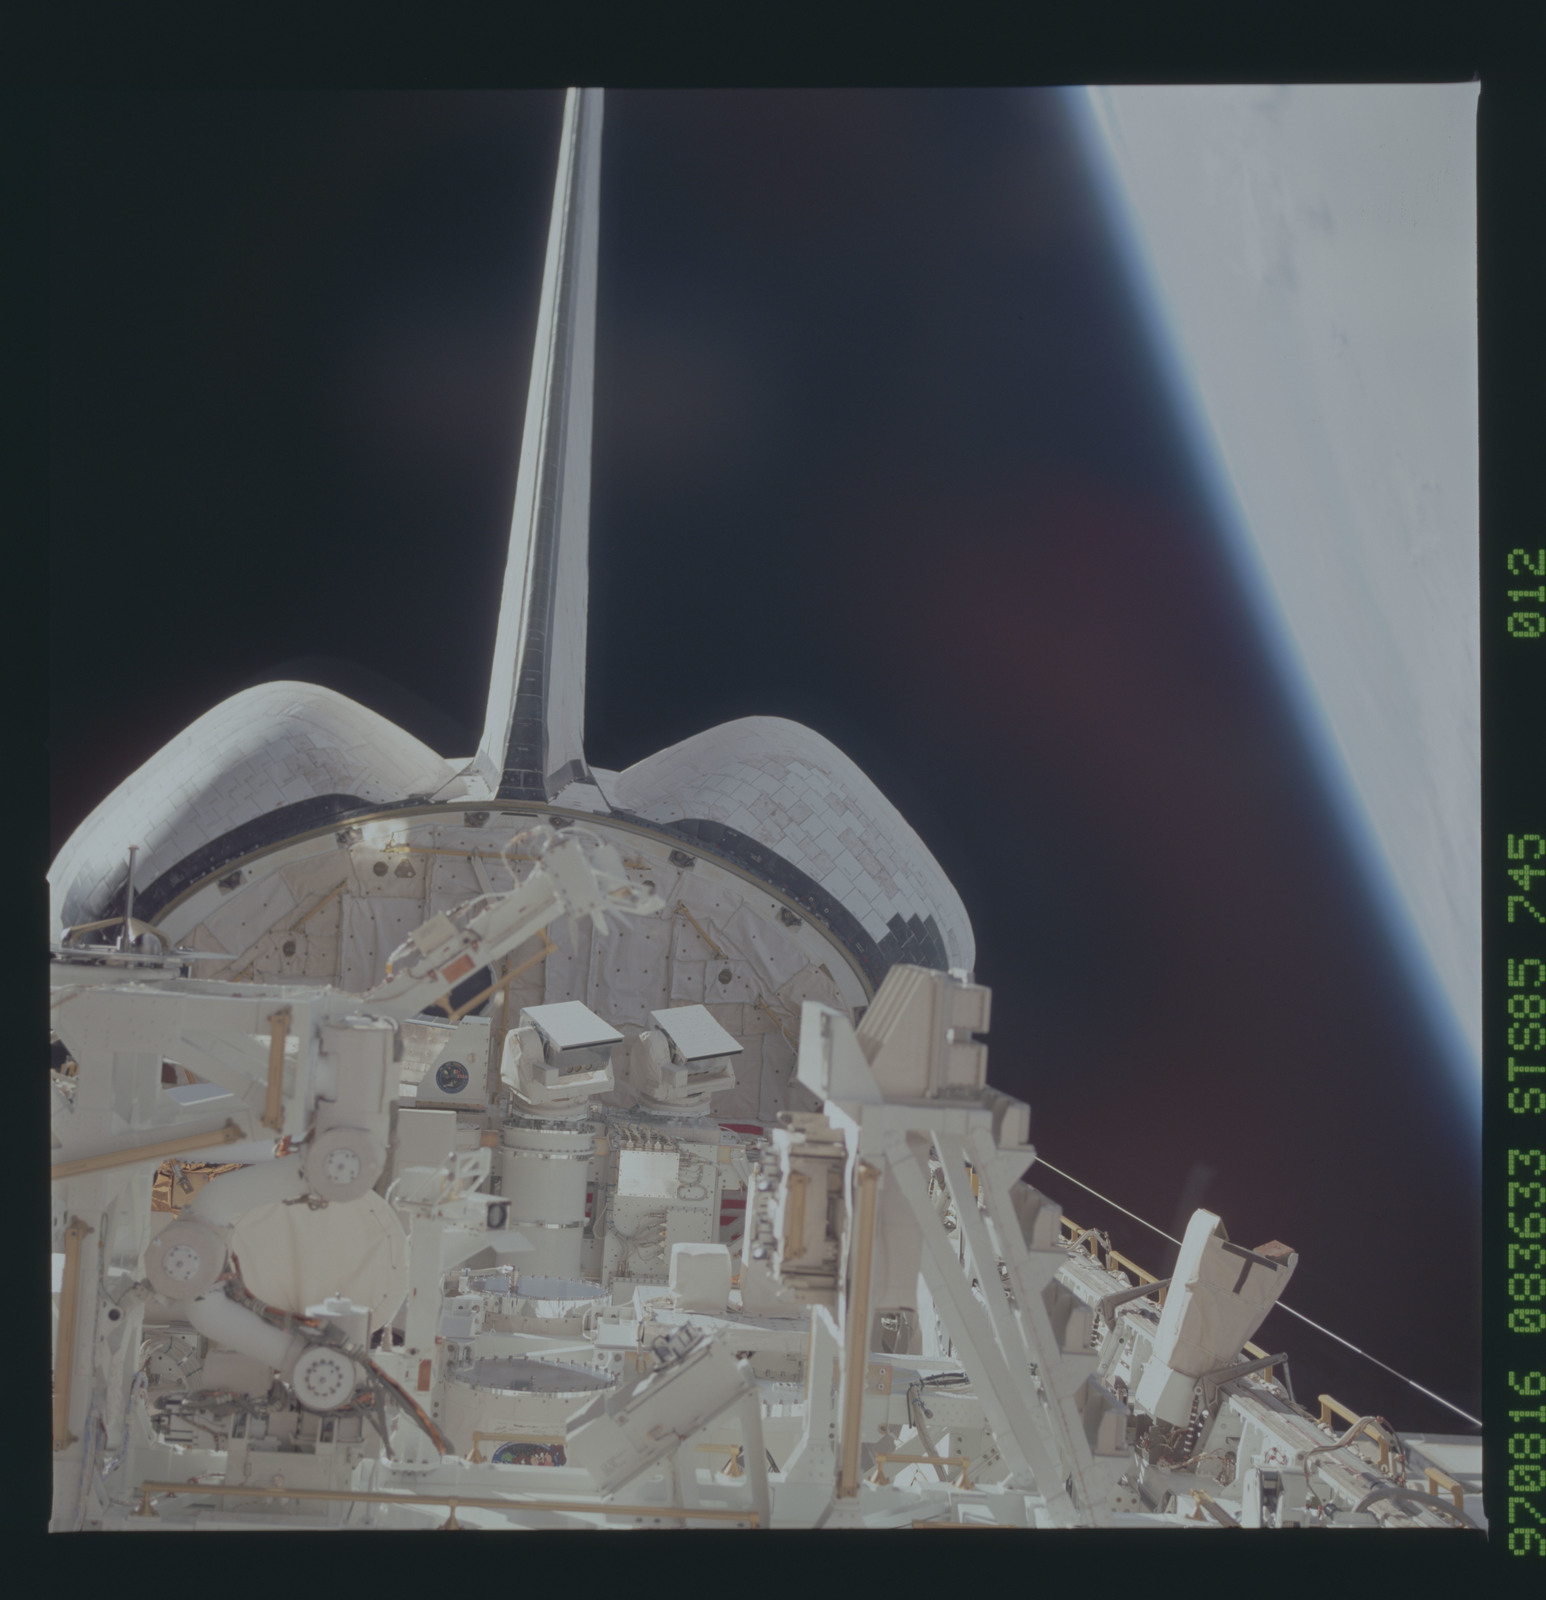 STS085-745-012 - STS-085 - Payload bay view with GLO instruments visible